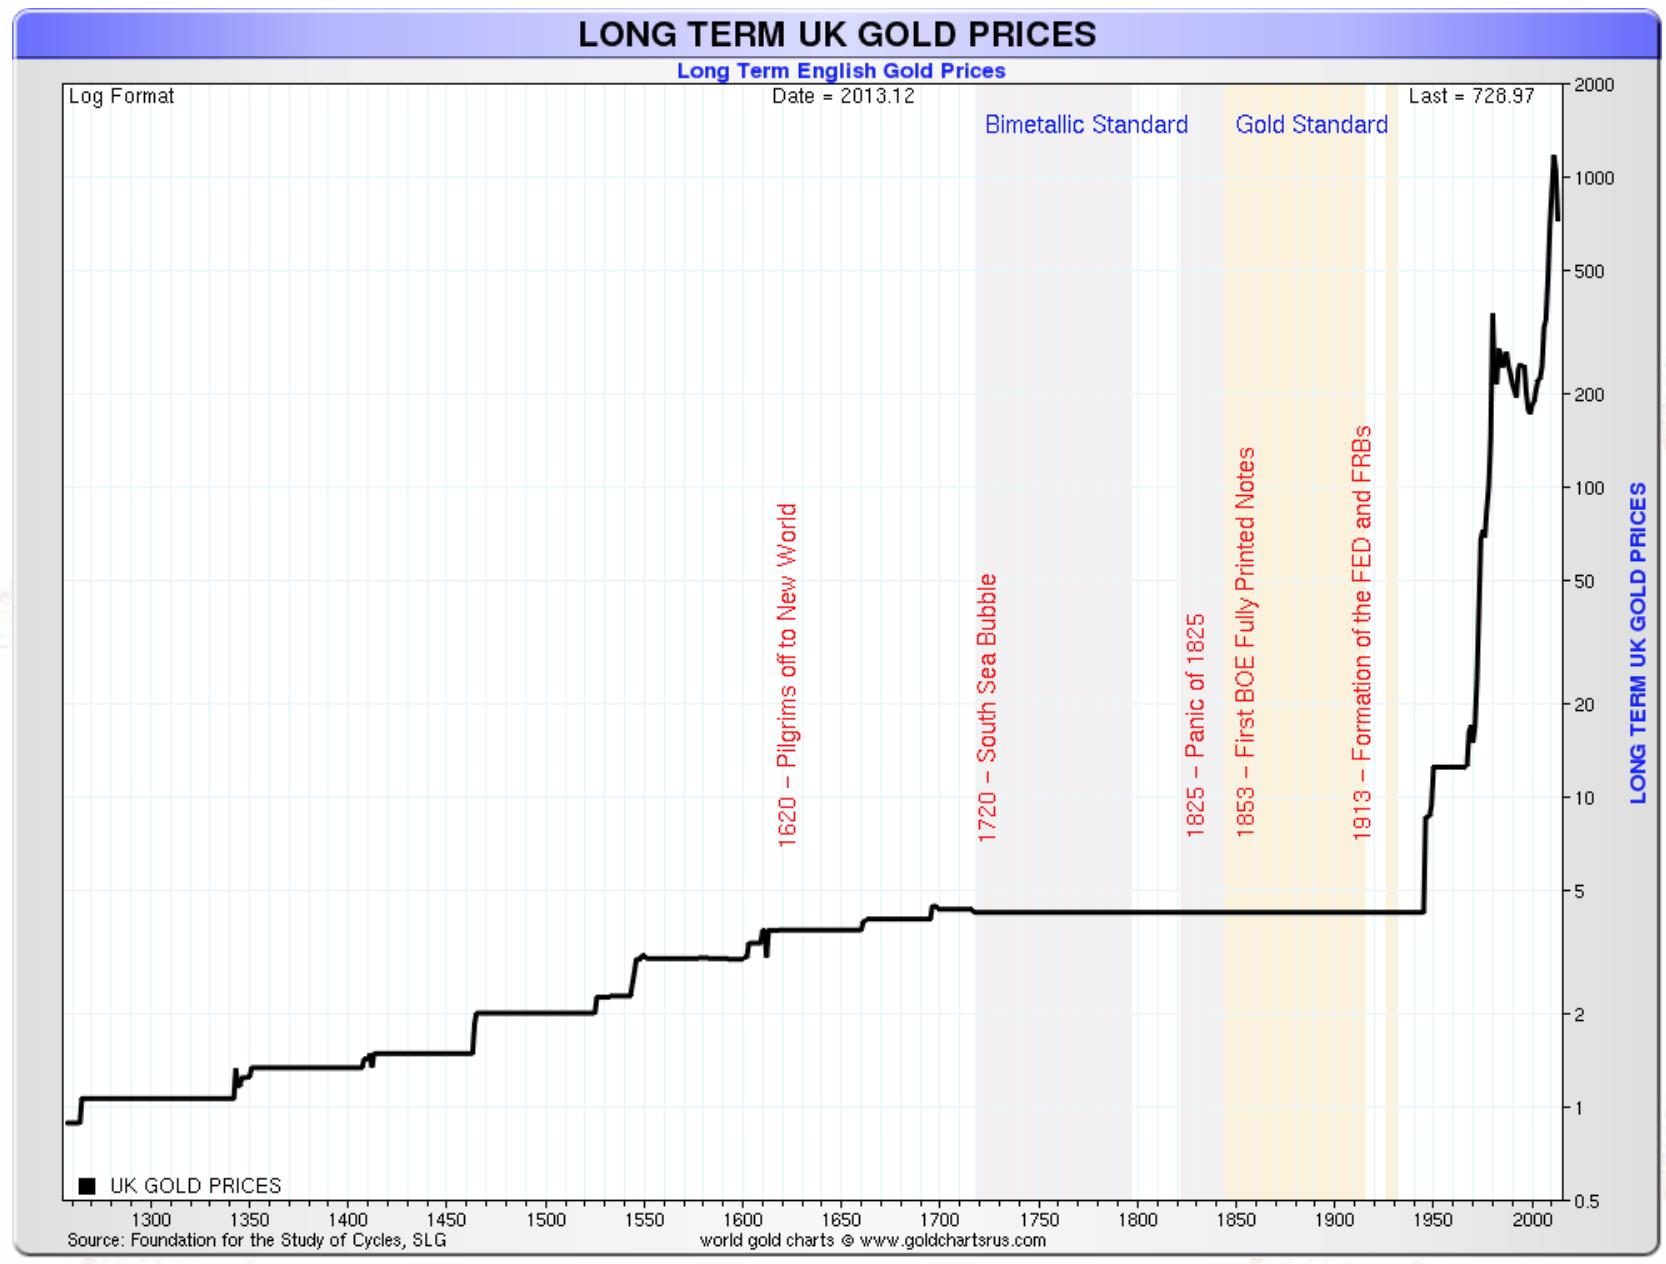 Long Term UK Gold Prices